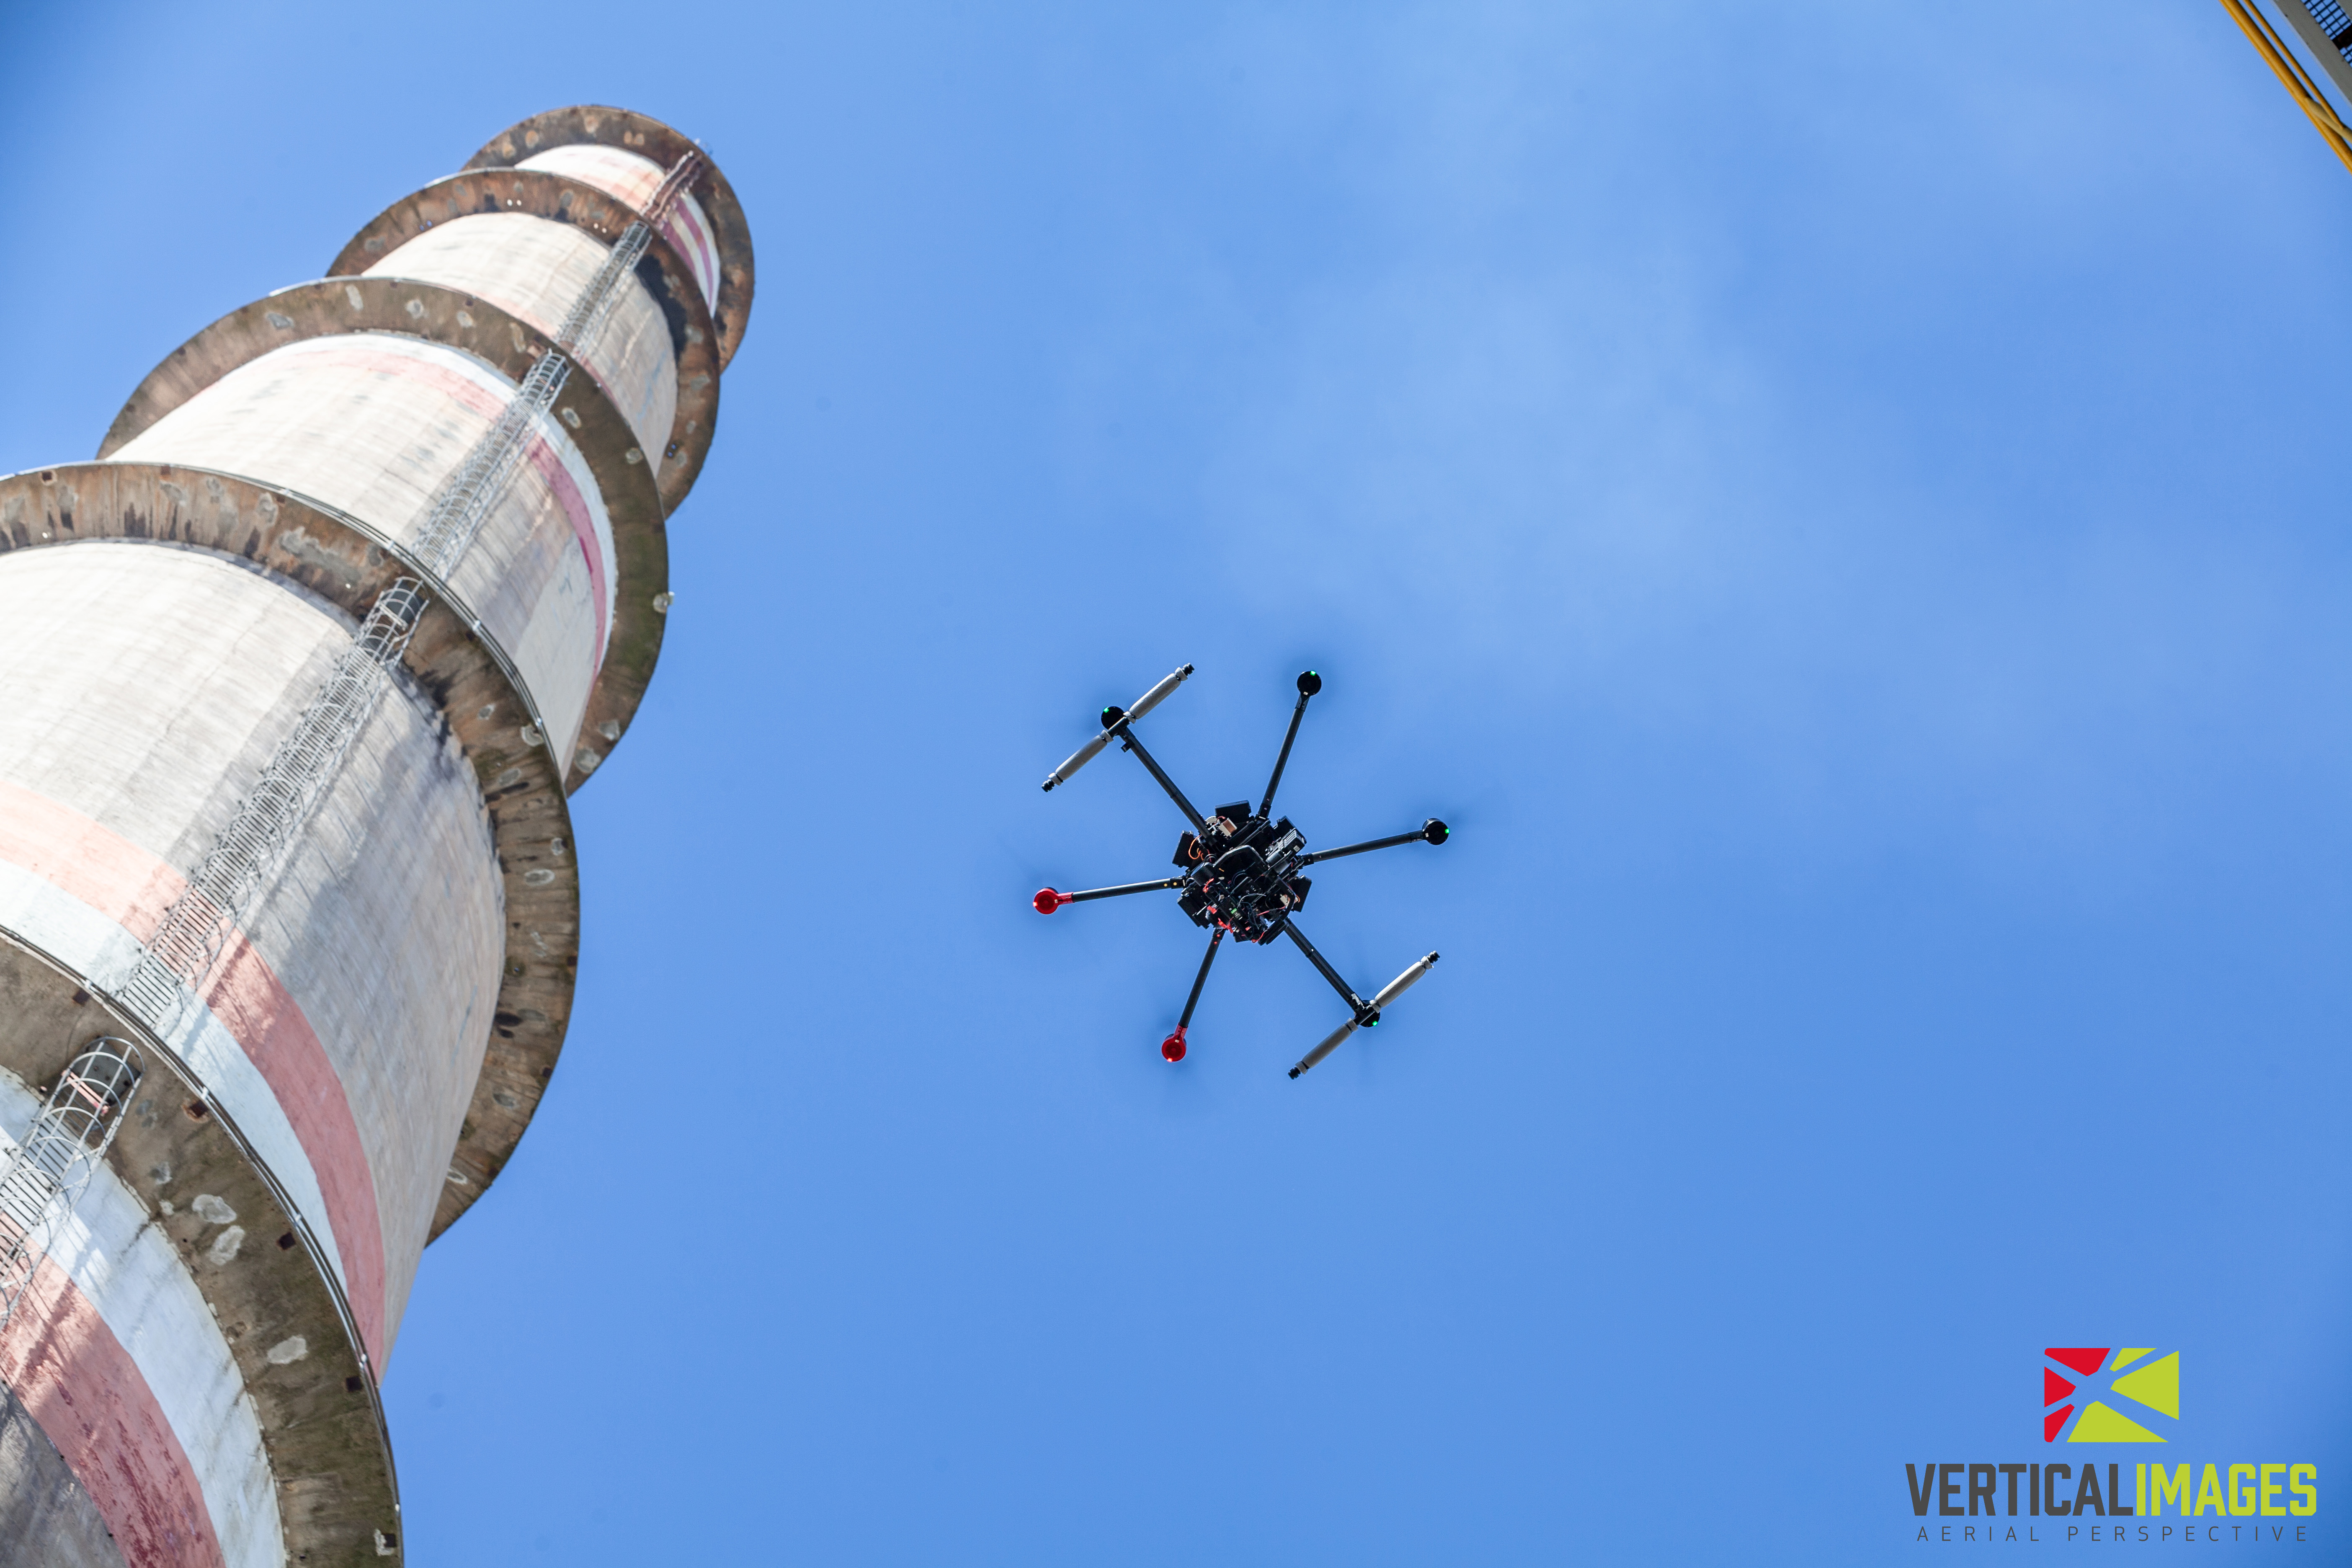 Chimney inspection using a drone and thermal imaging camera with DJI M600 Pro